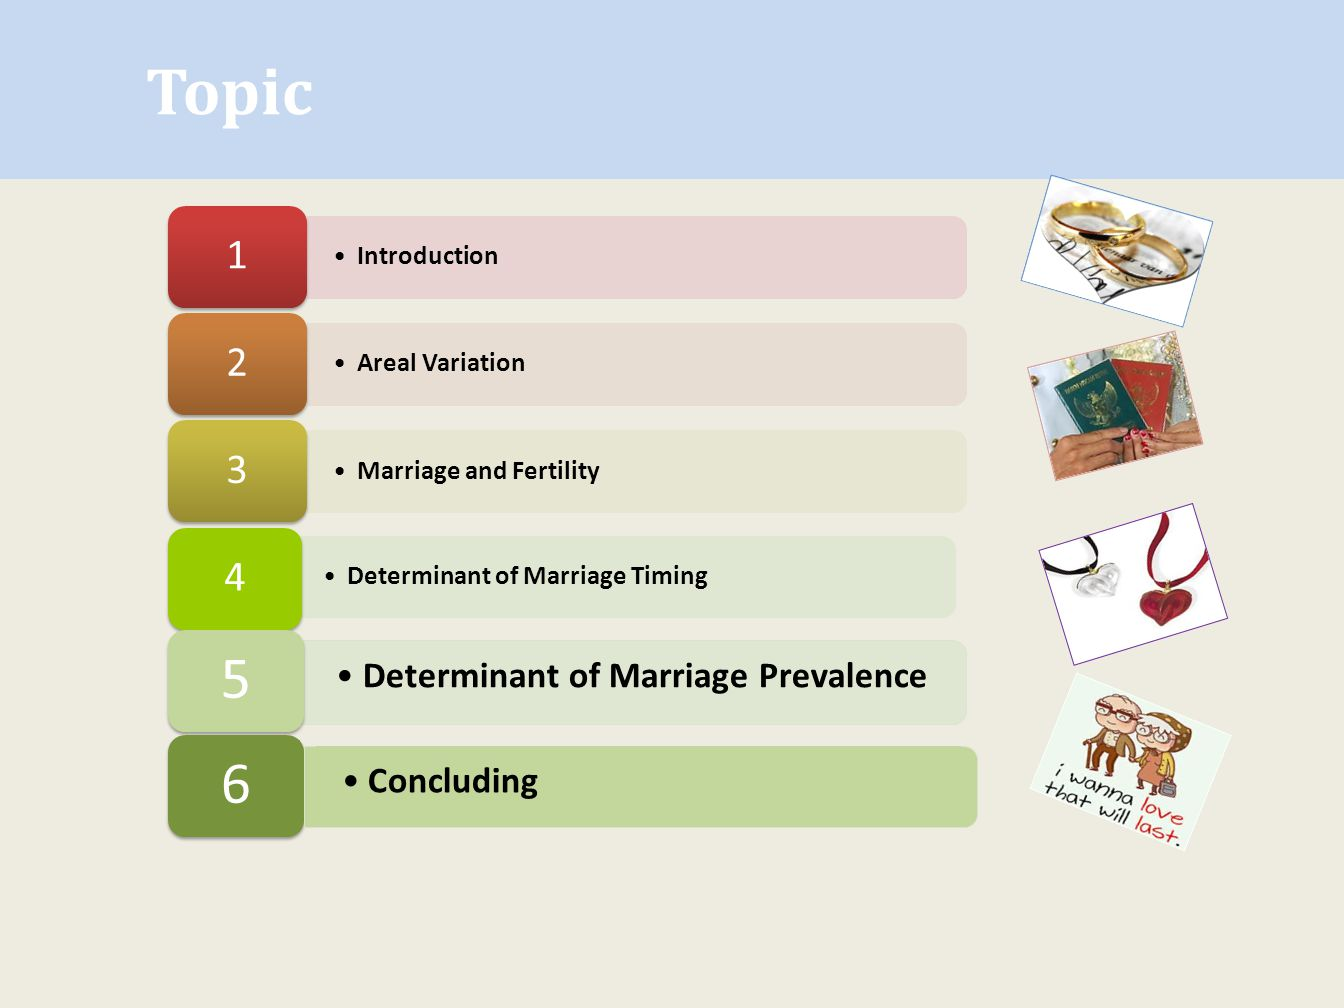 Topic 5 6 1 2 3 4 Determinant of Marriage Prevalence Concluding